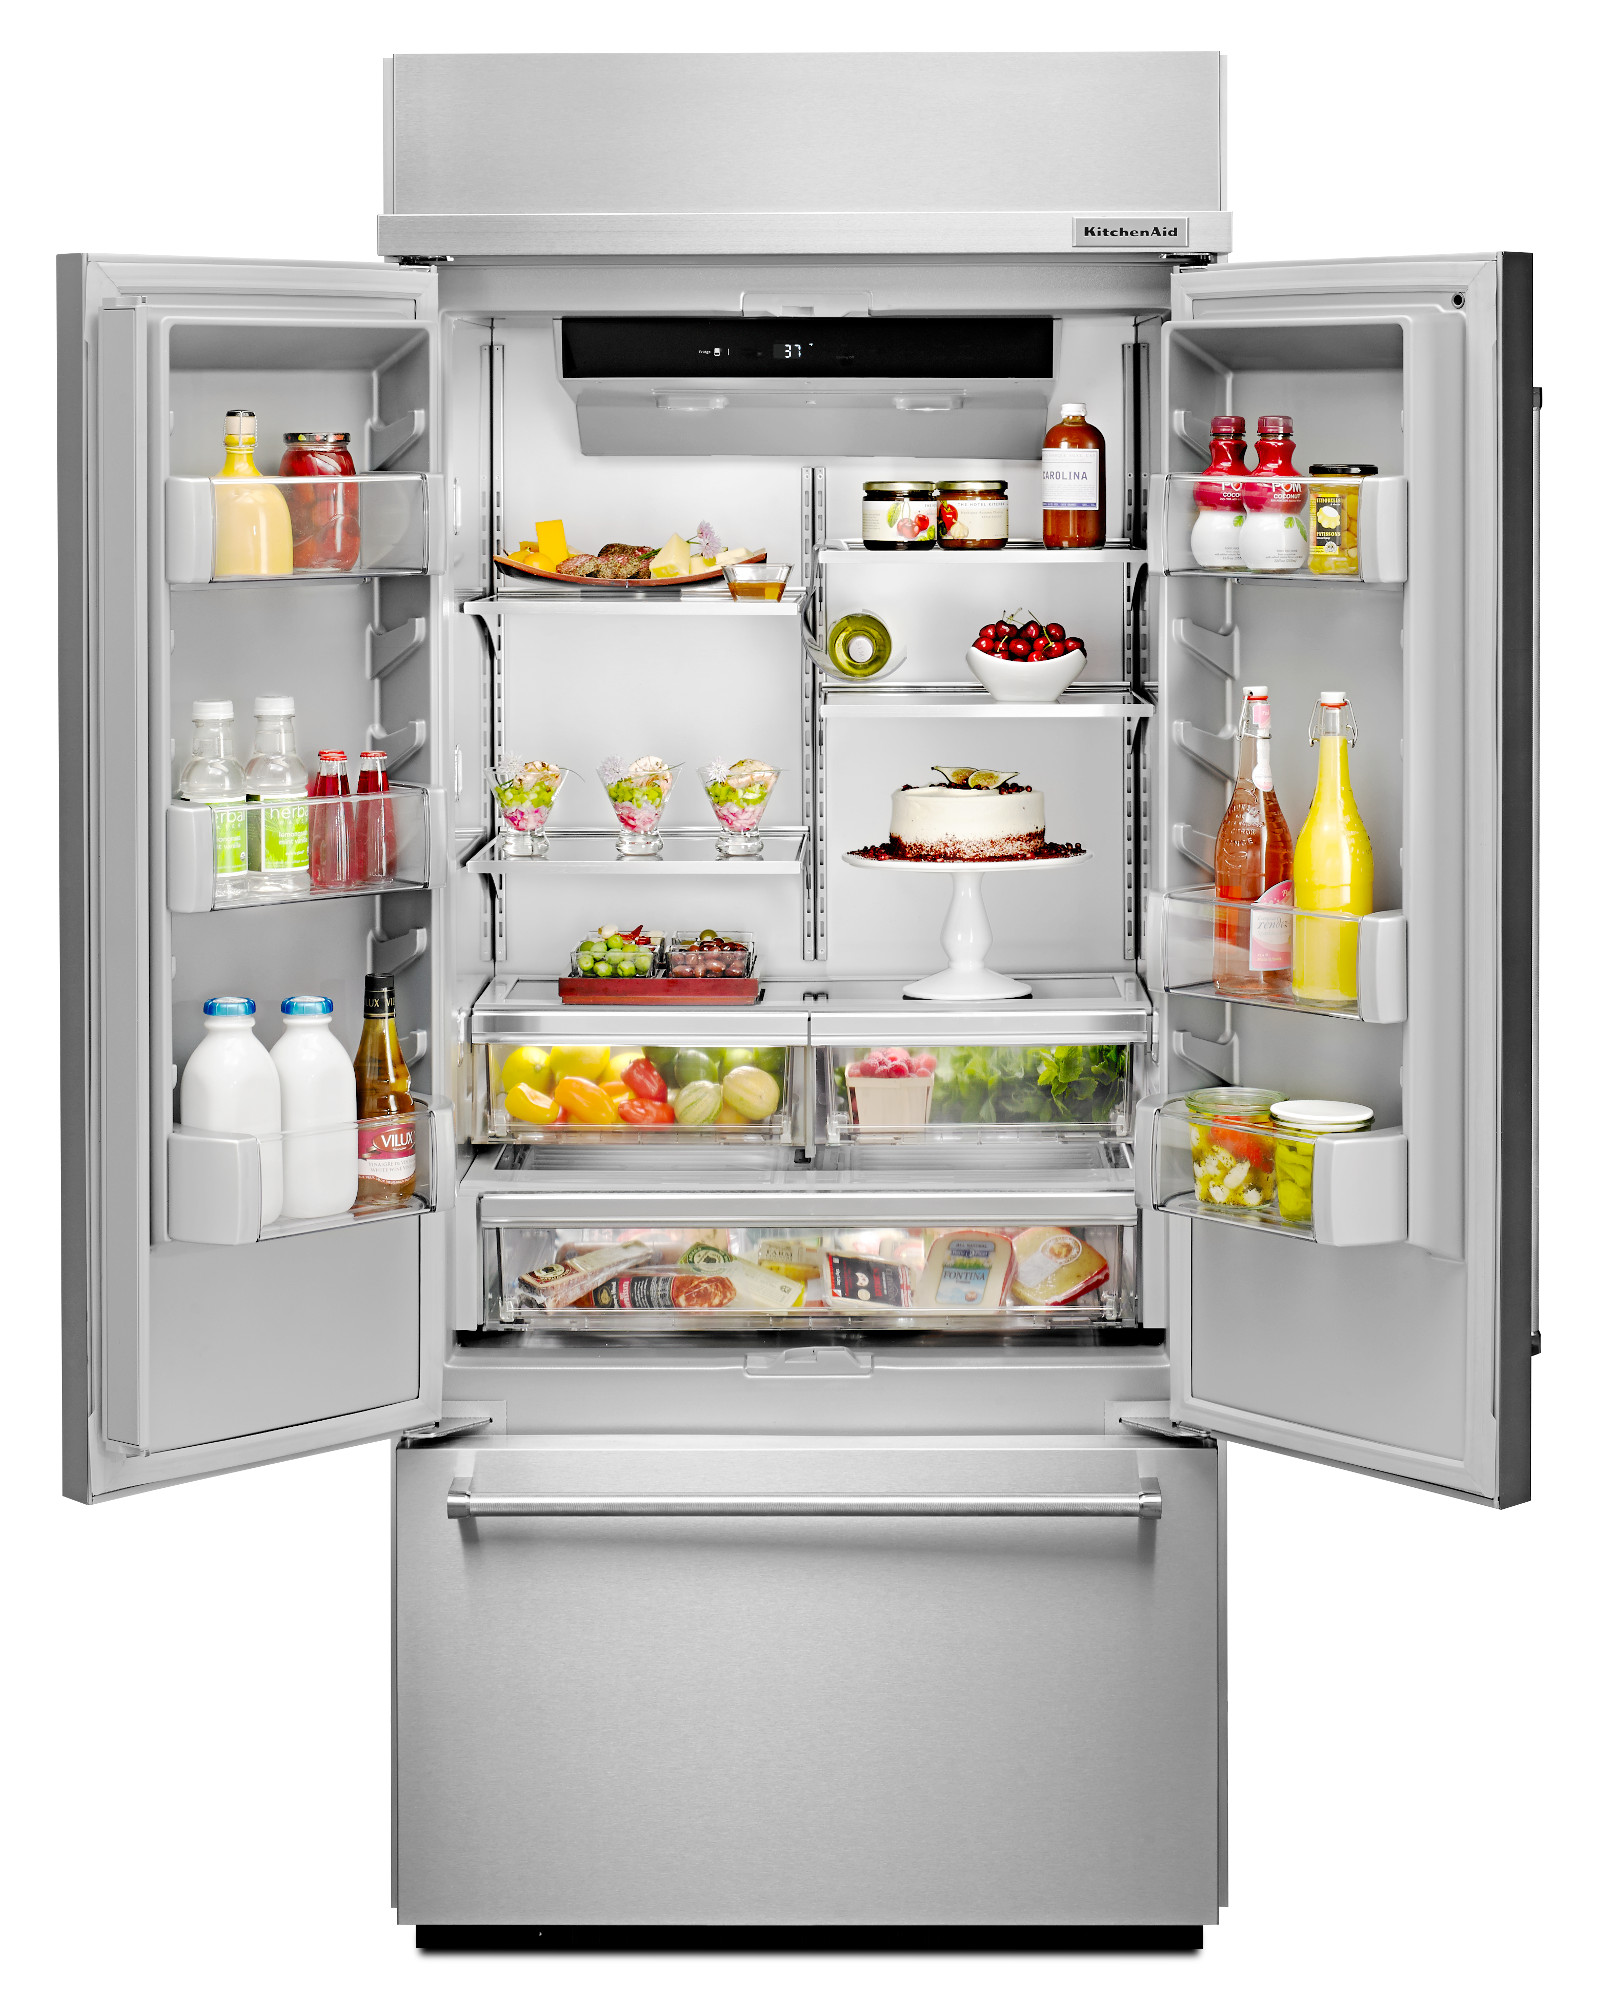 KitchenAid KBFN506ESS 20.8 cu. ft. Built-In French Door Refrigerator - Stainless Steel